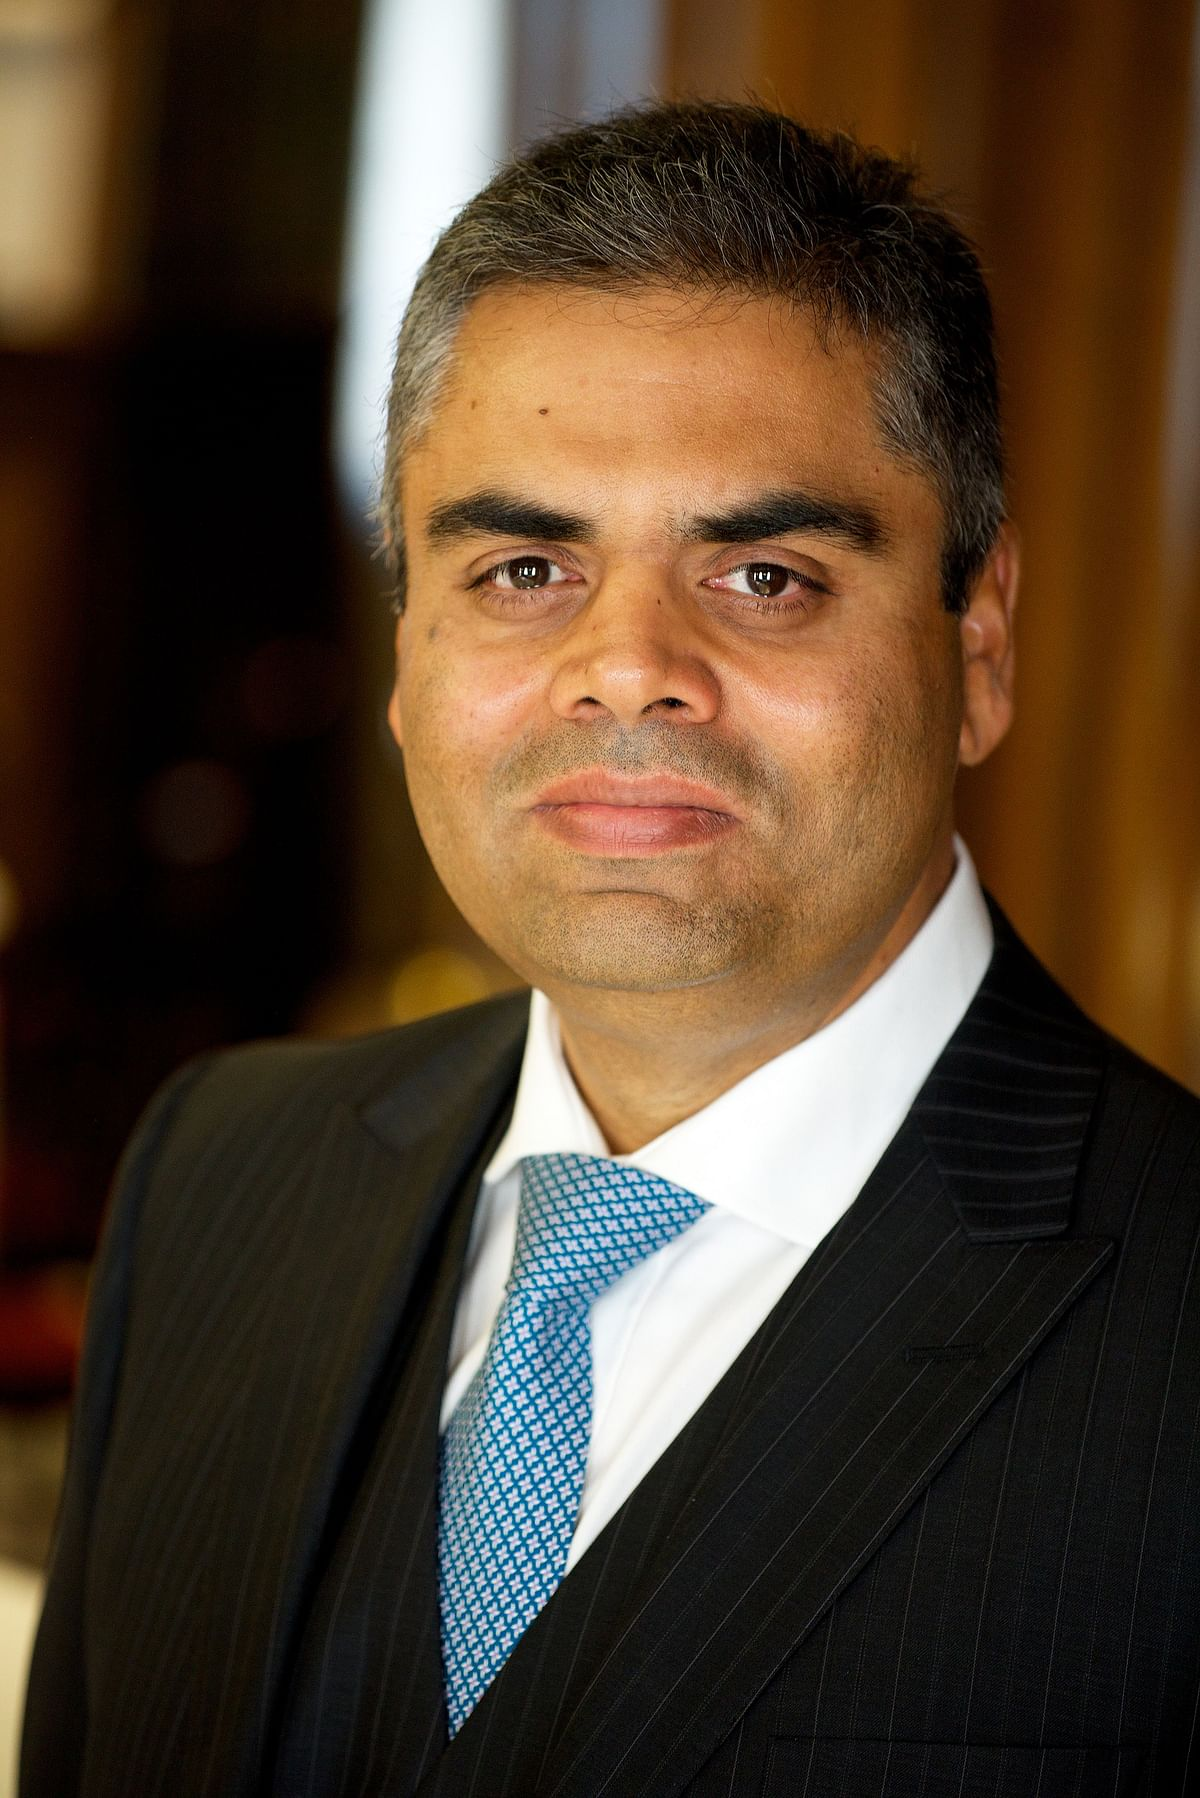 Rishi Kapoor, Chief Executive Officer, Investcorp. (Source: Company's Public Relations)